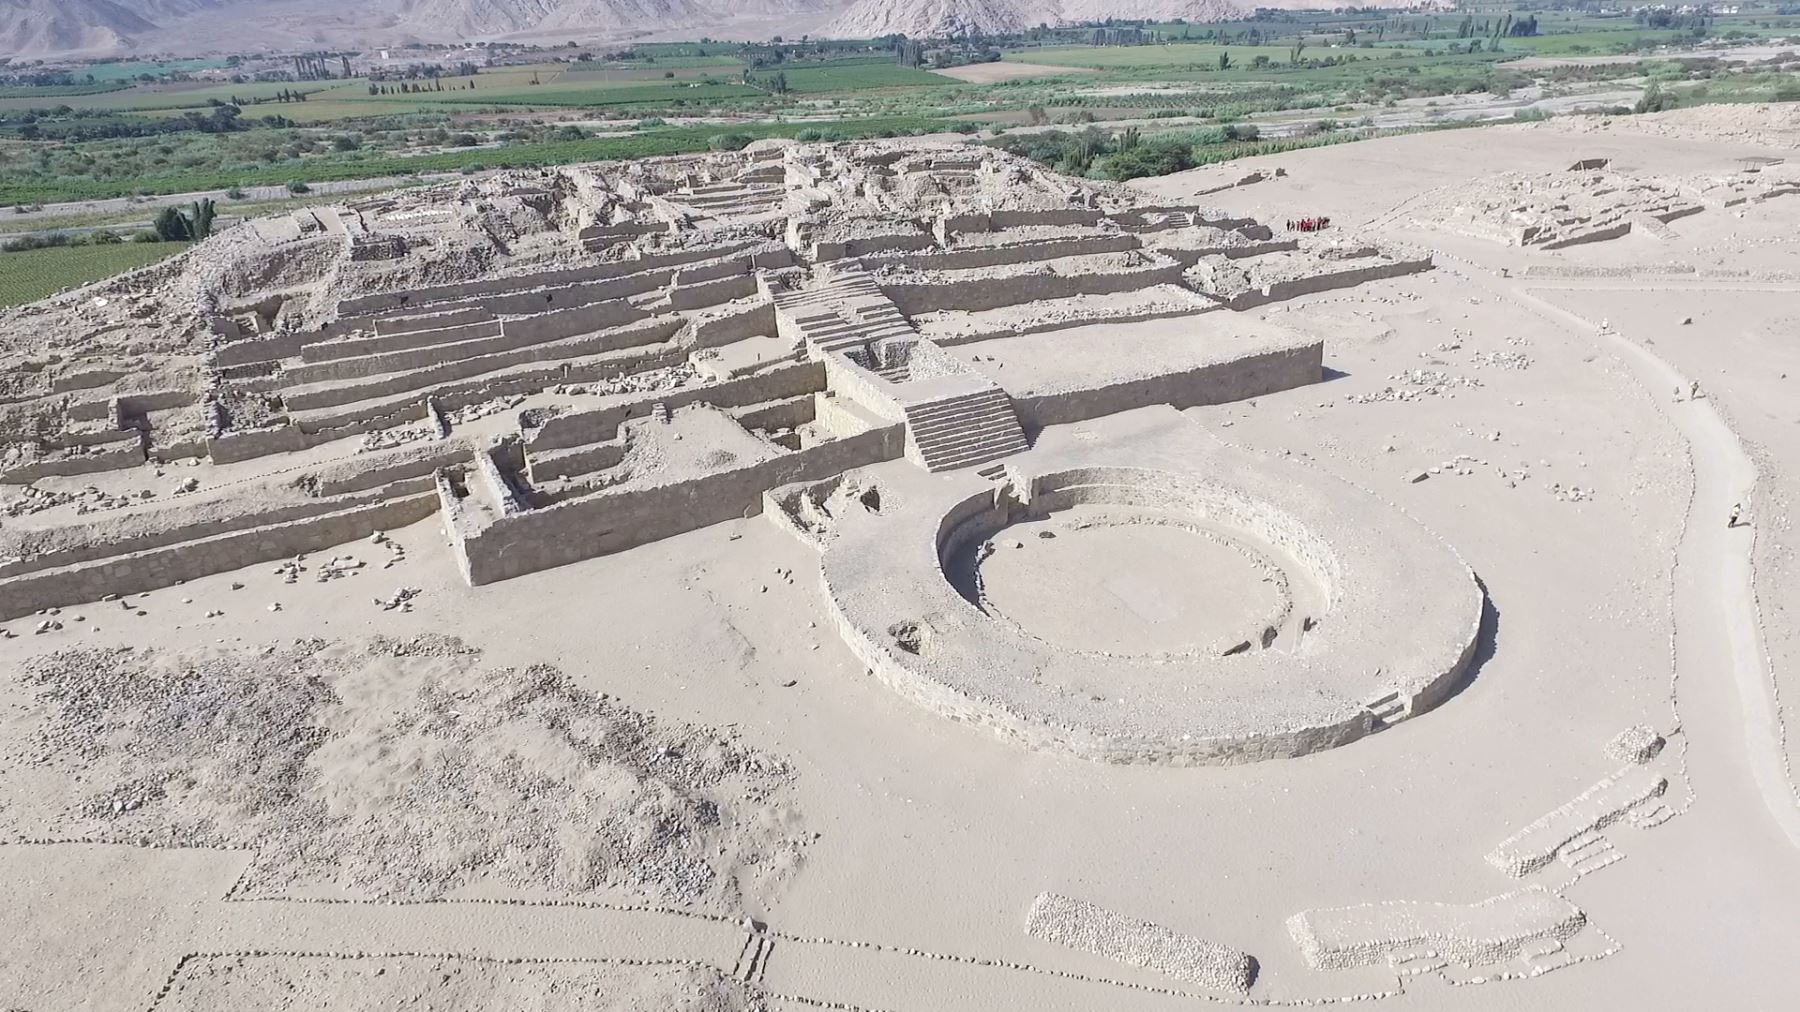 Caral.